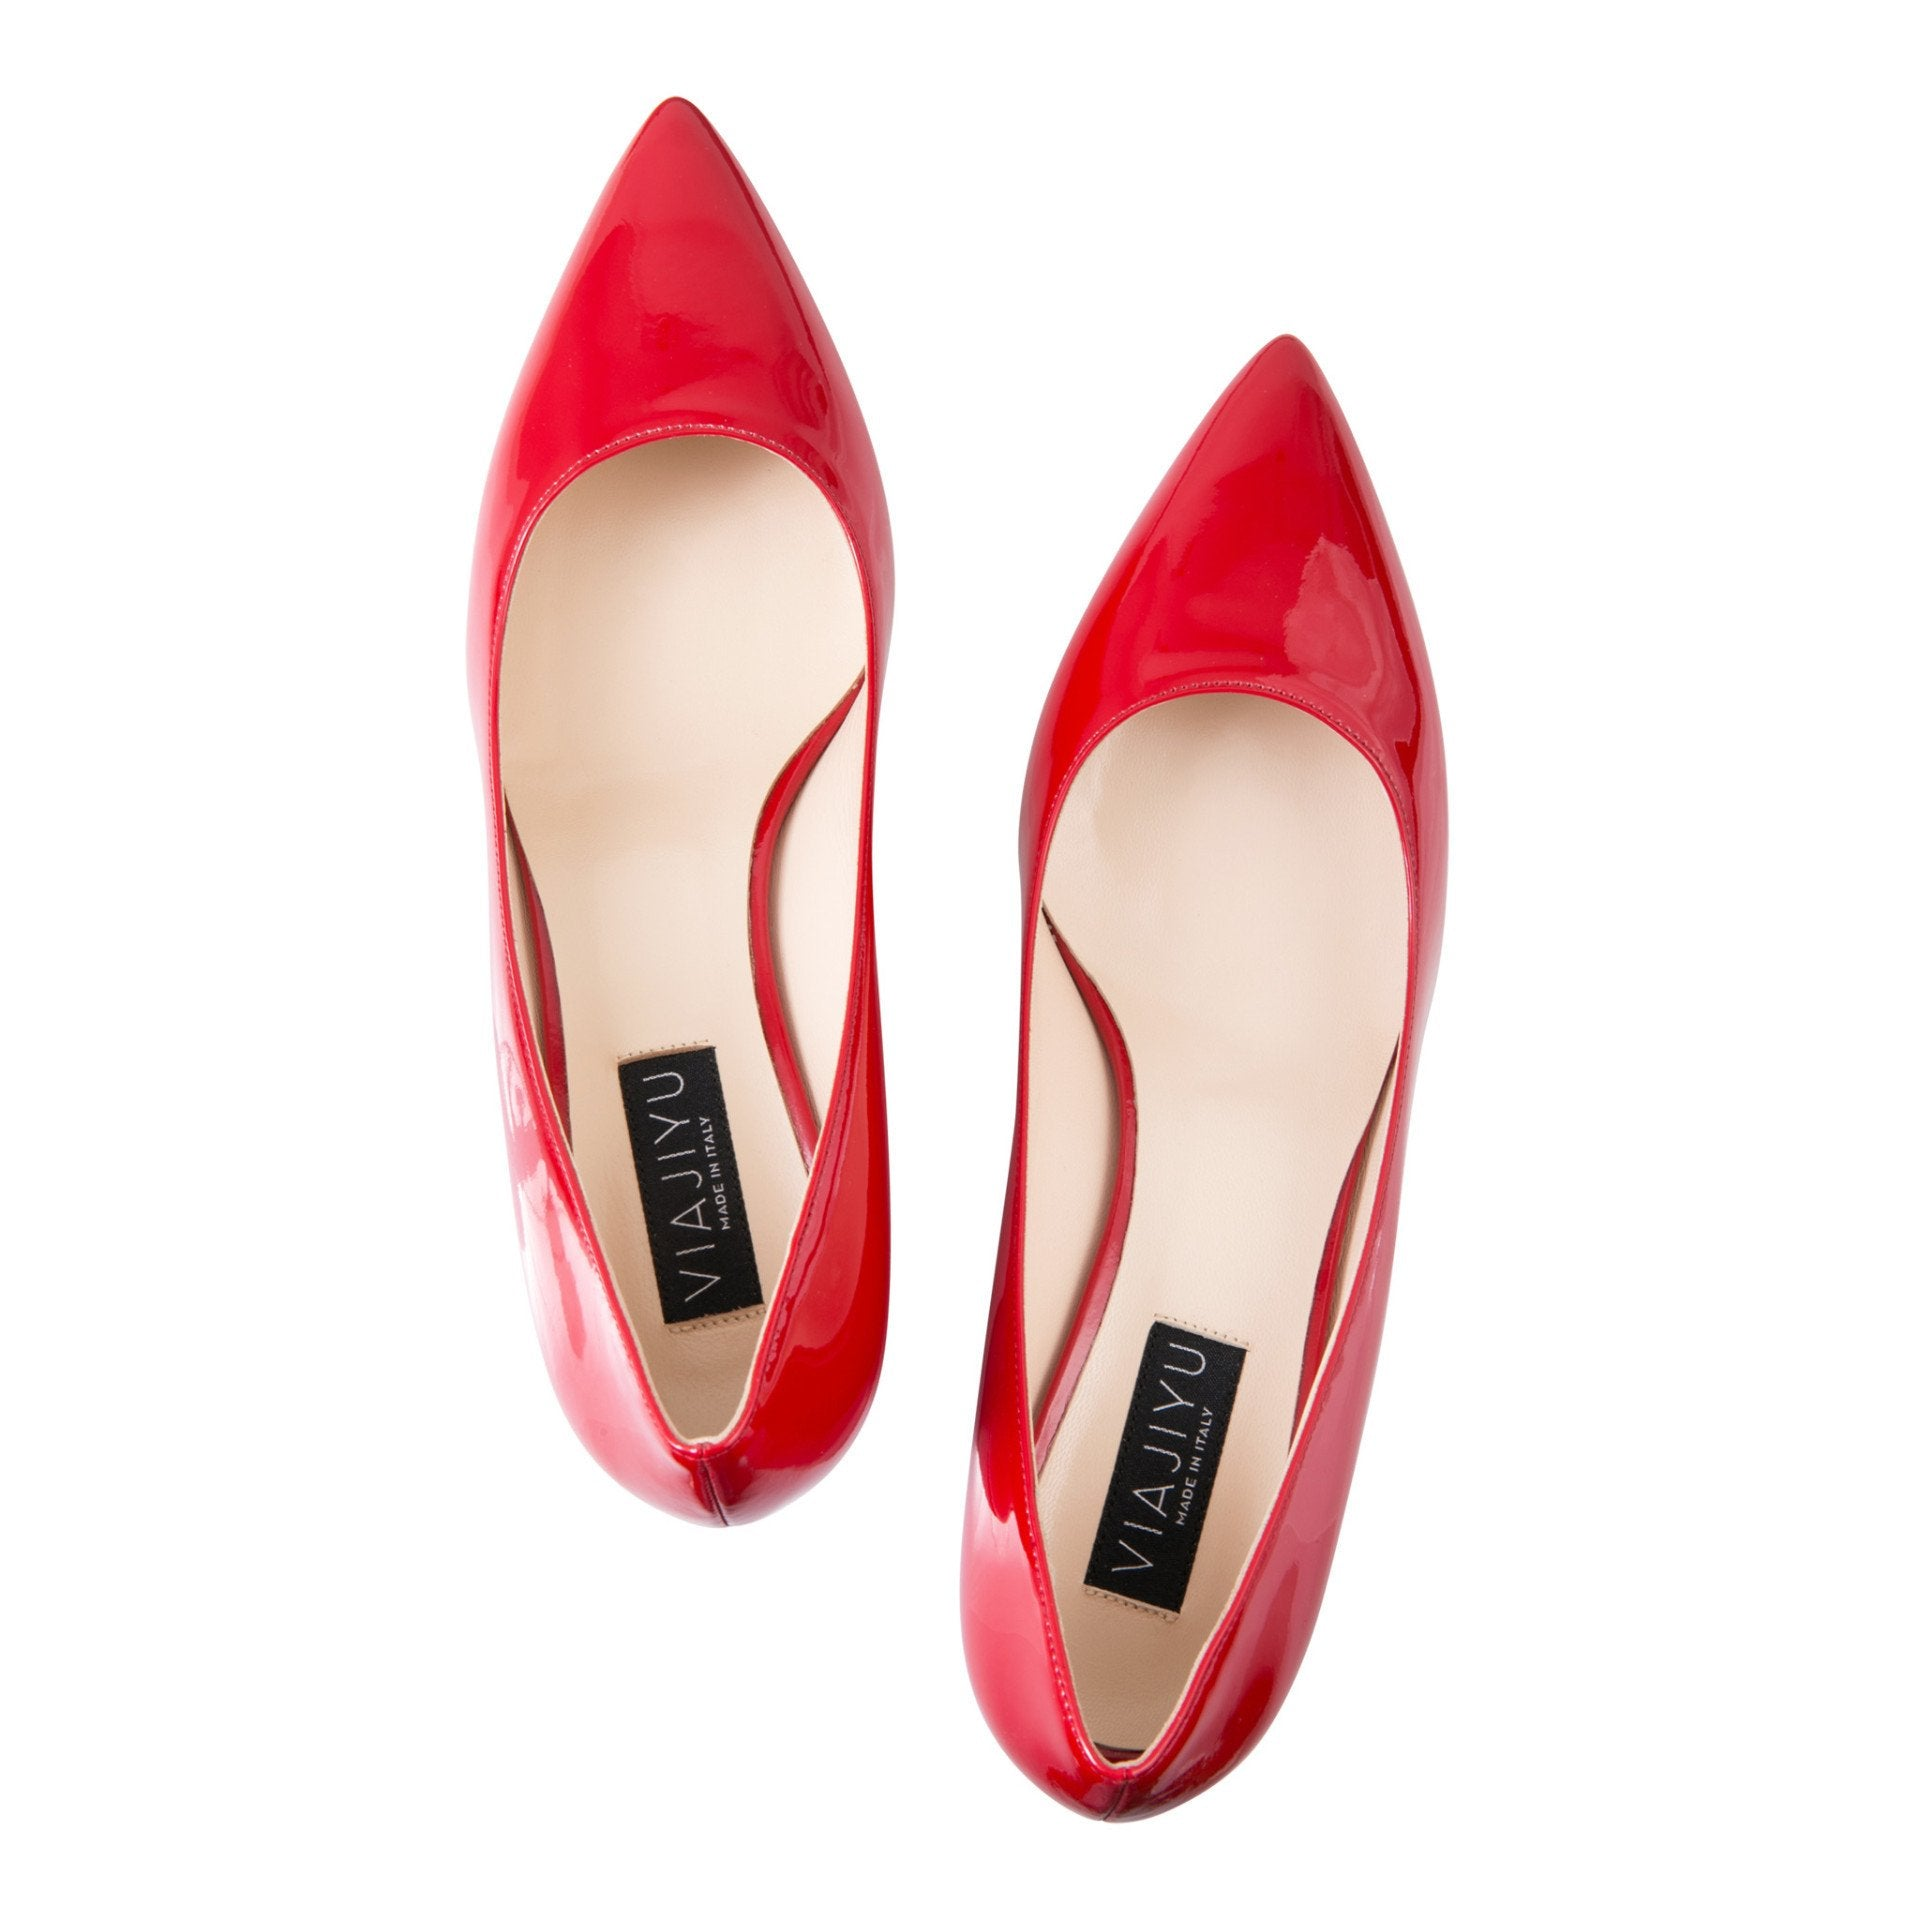 TRENTO - Patent Rosso, VIAJIYU - Women's Hand Made Sustainable Luxury Shoes. Made in Italy. Made to Order.